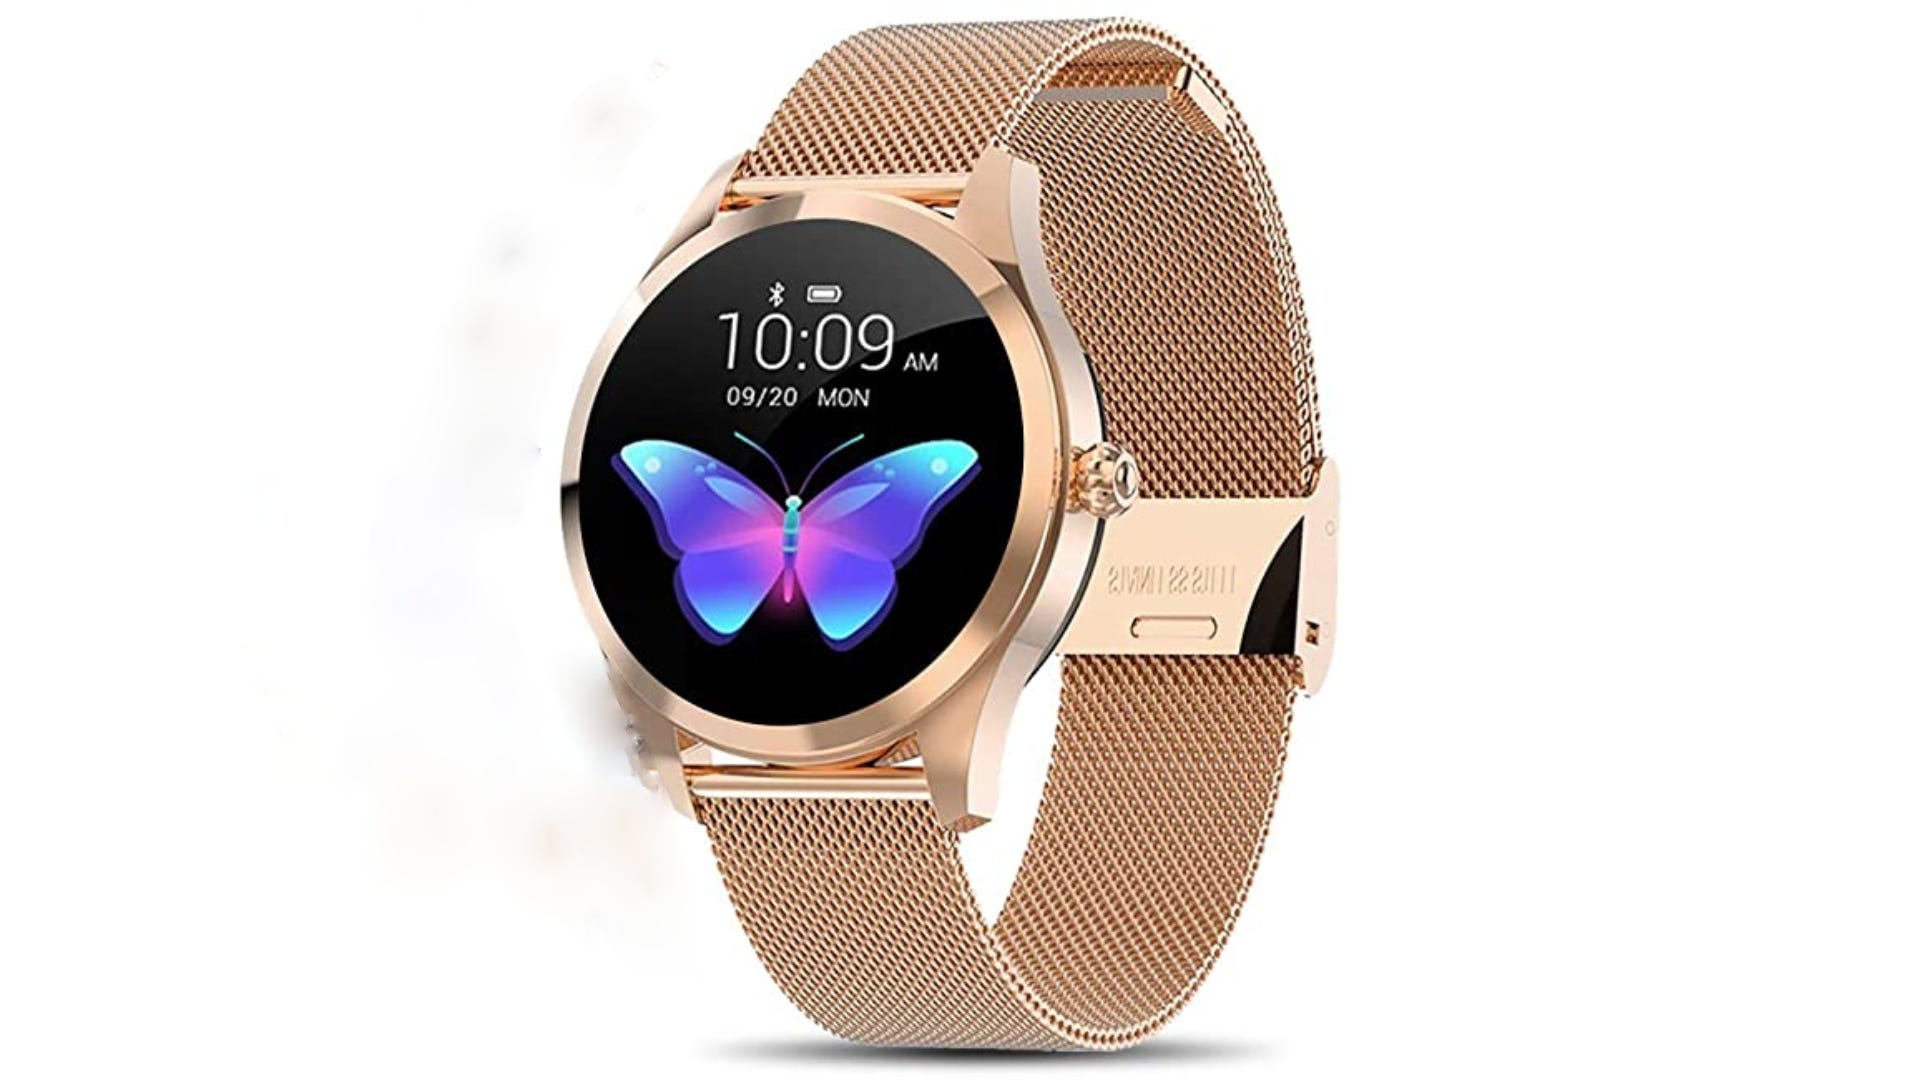 gold banded smart watch, black face background with colorful butterfly